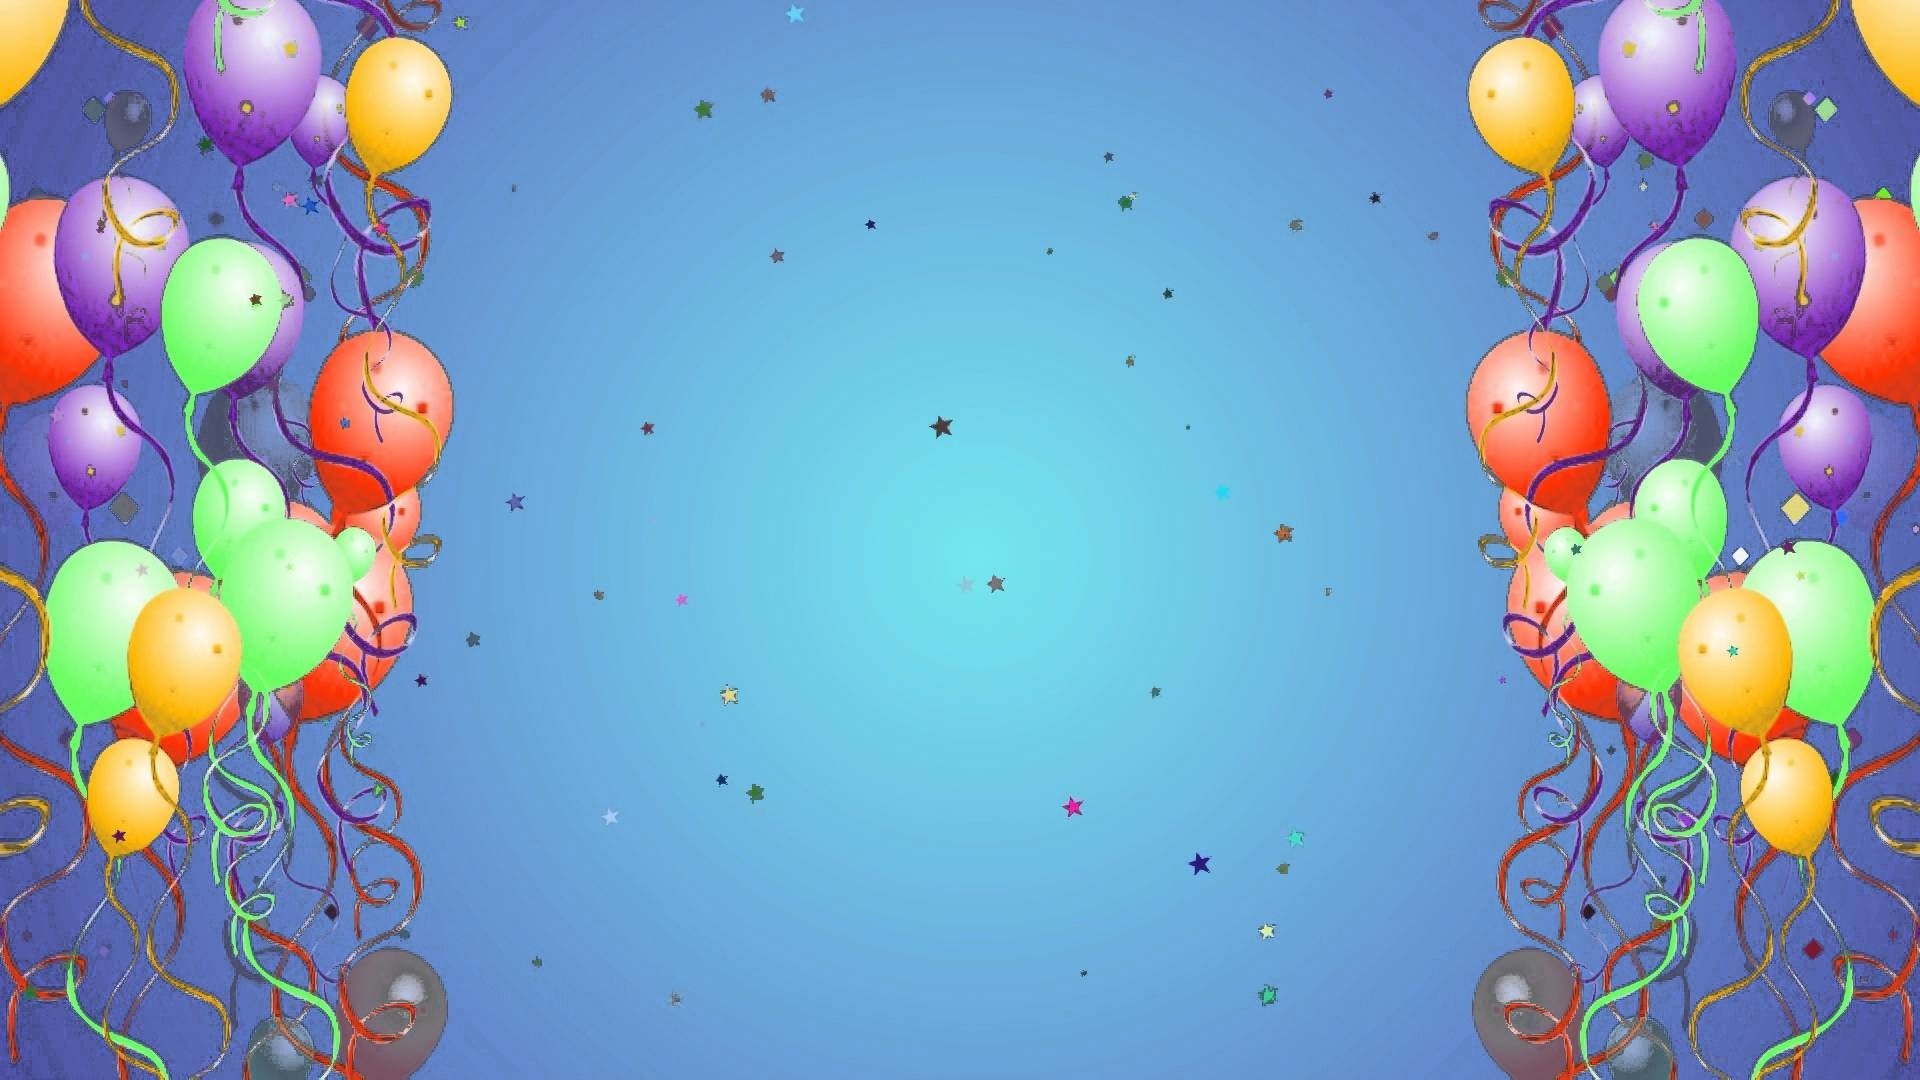 Birthday background images wallpapertag - Happy birthday balloon images hd ...